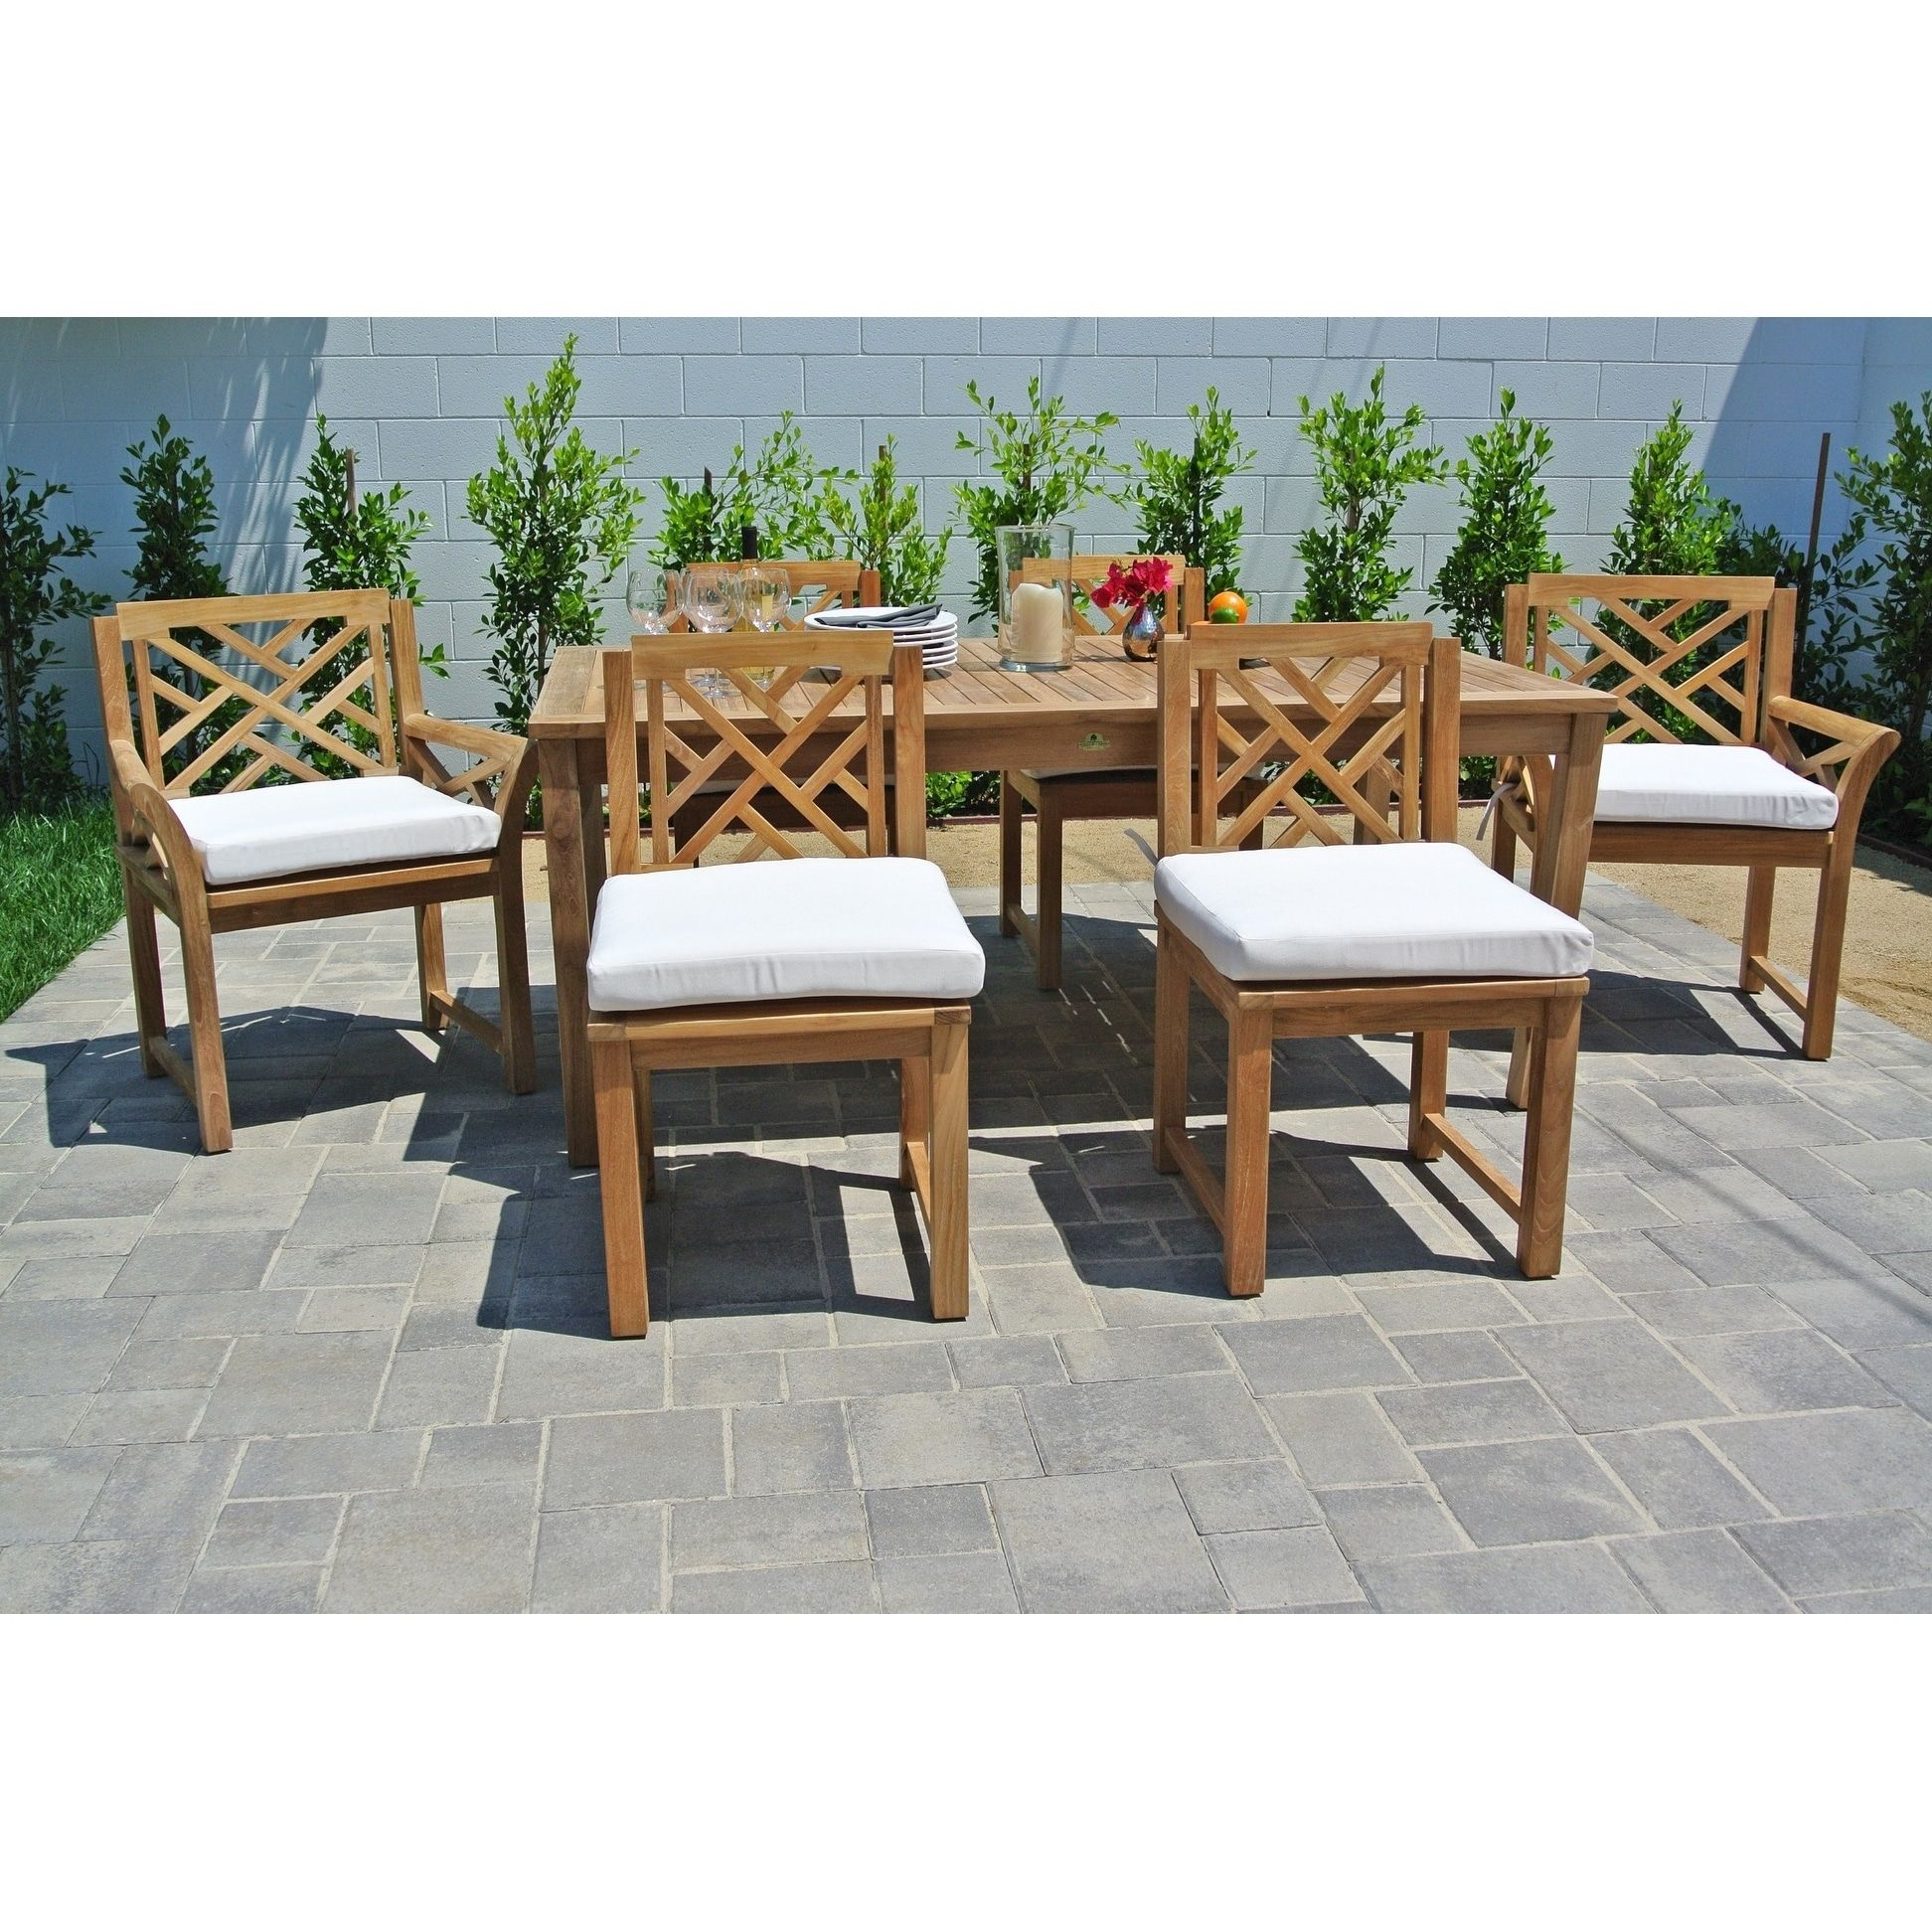 7 pc Monterey Teak Outdoor Patio Furniture Dining Set with 72